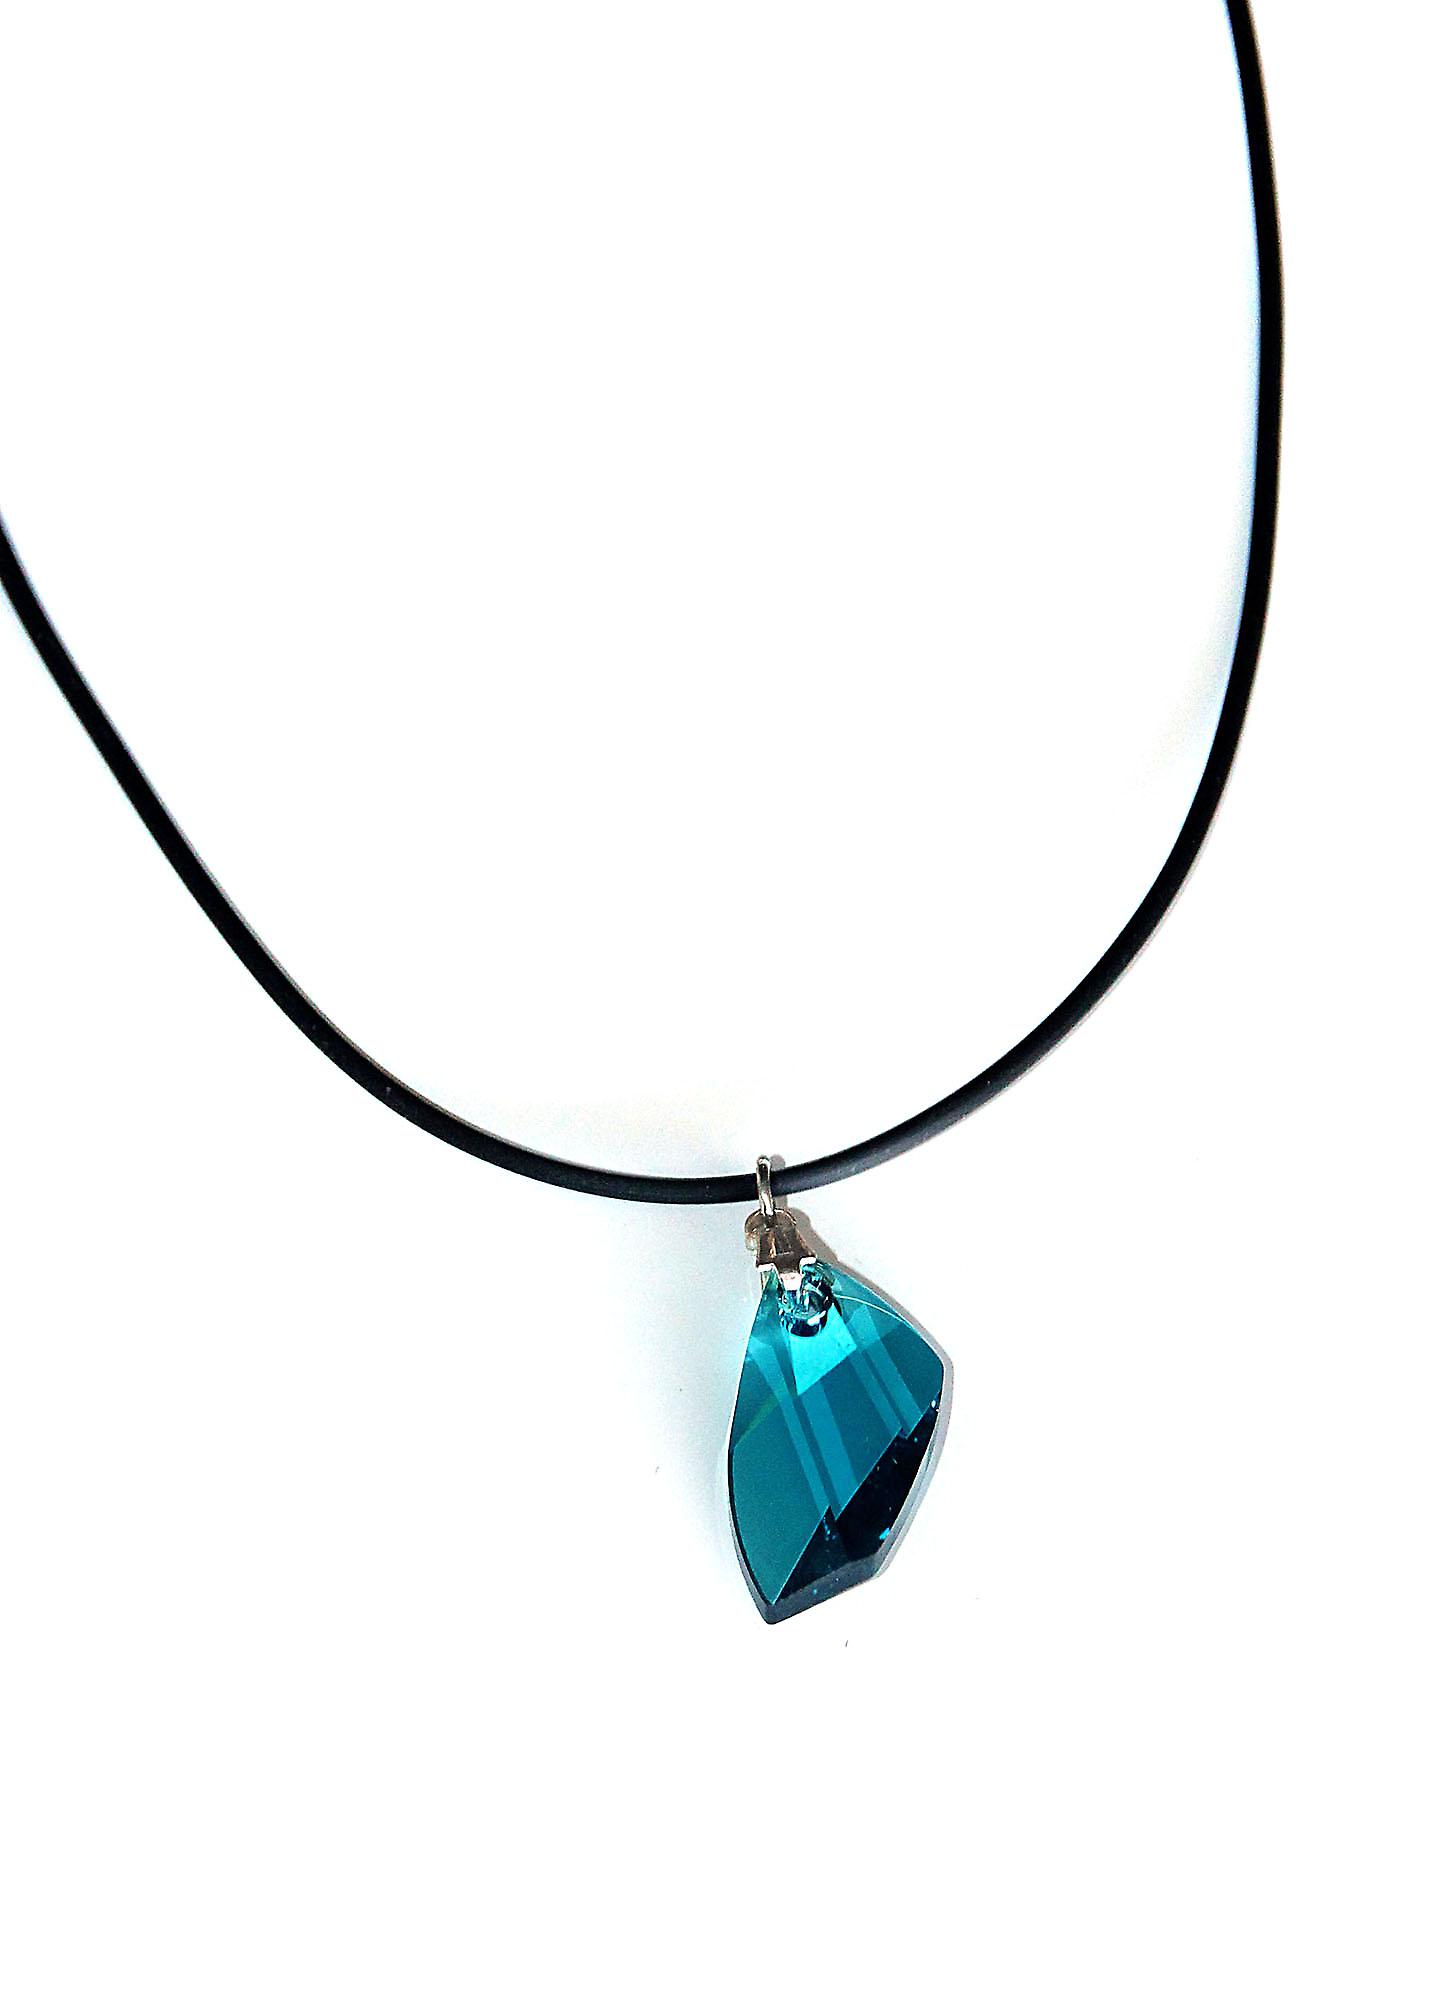 Waooh - Jewelry - Swarovski / Pendant blue wing and rubber cord